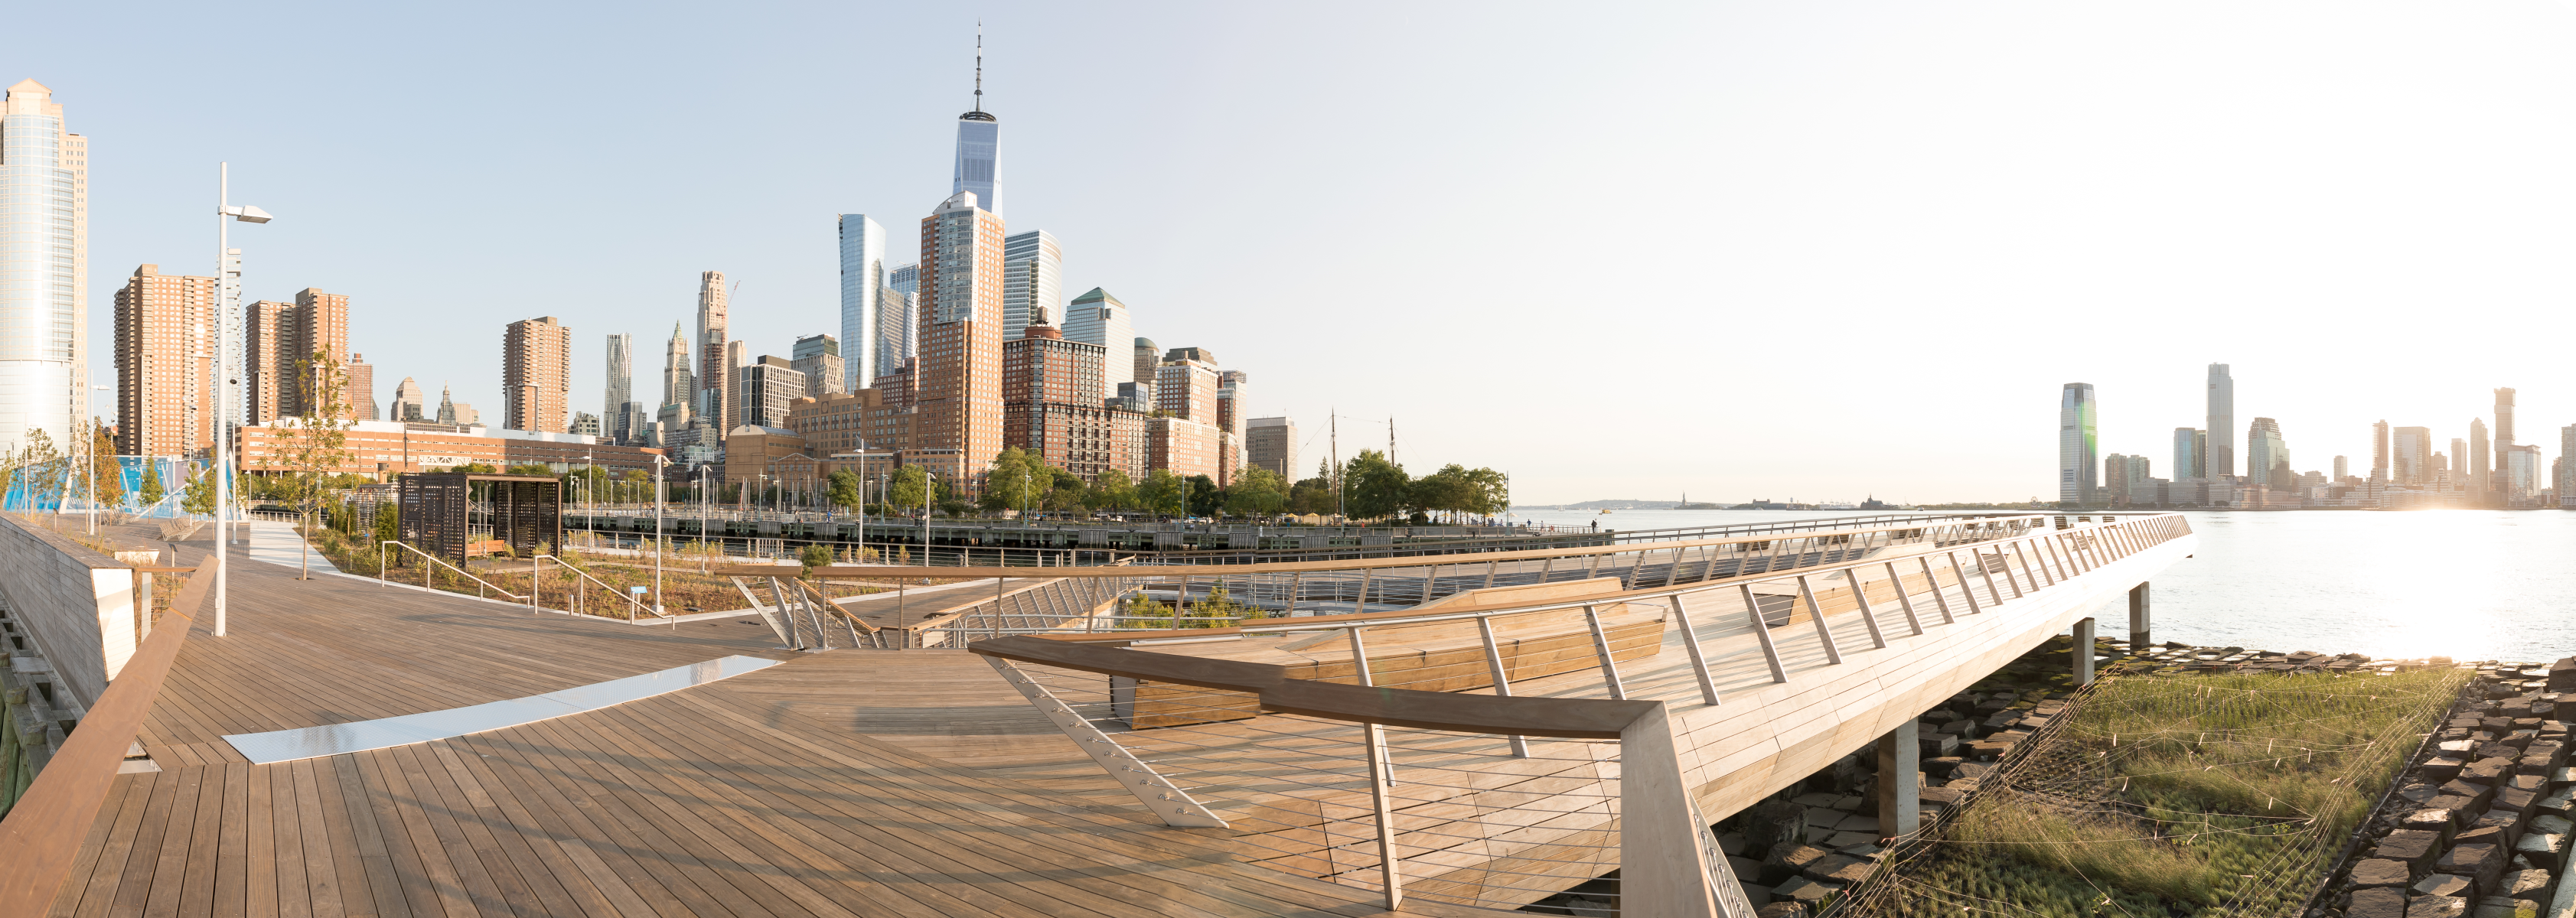 Panorama of the elevated walkway at the edge of HRPK's Pier 26